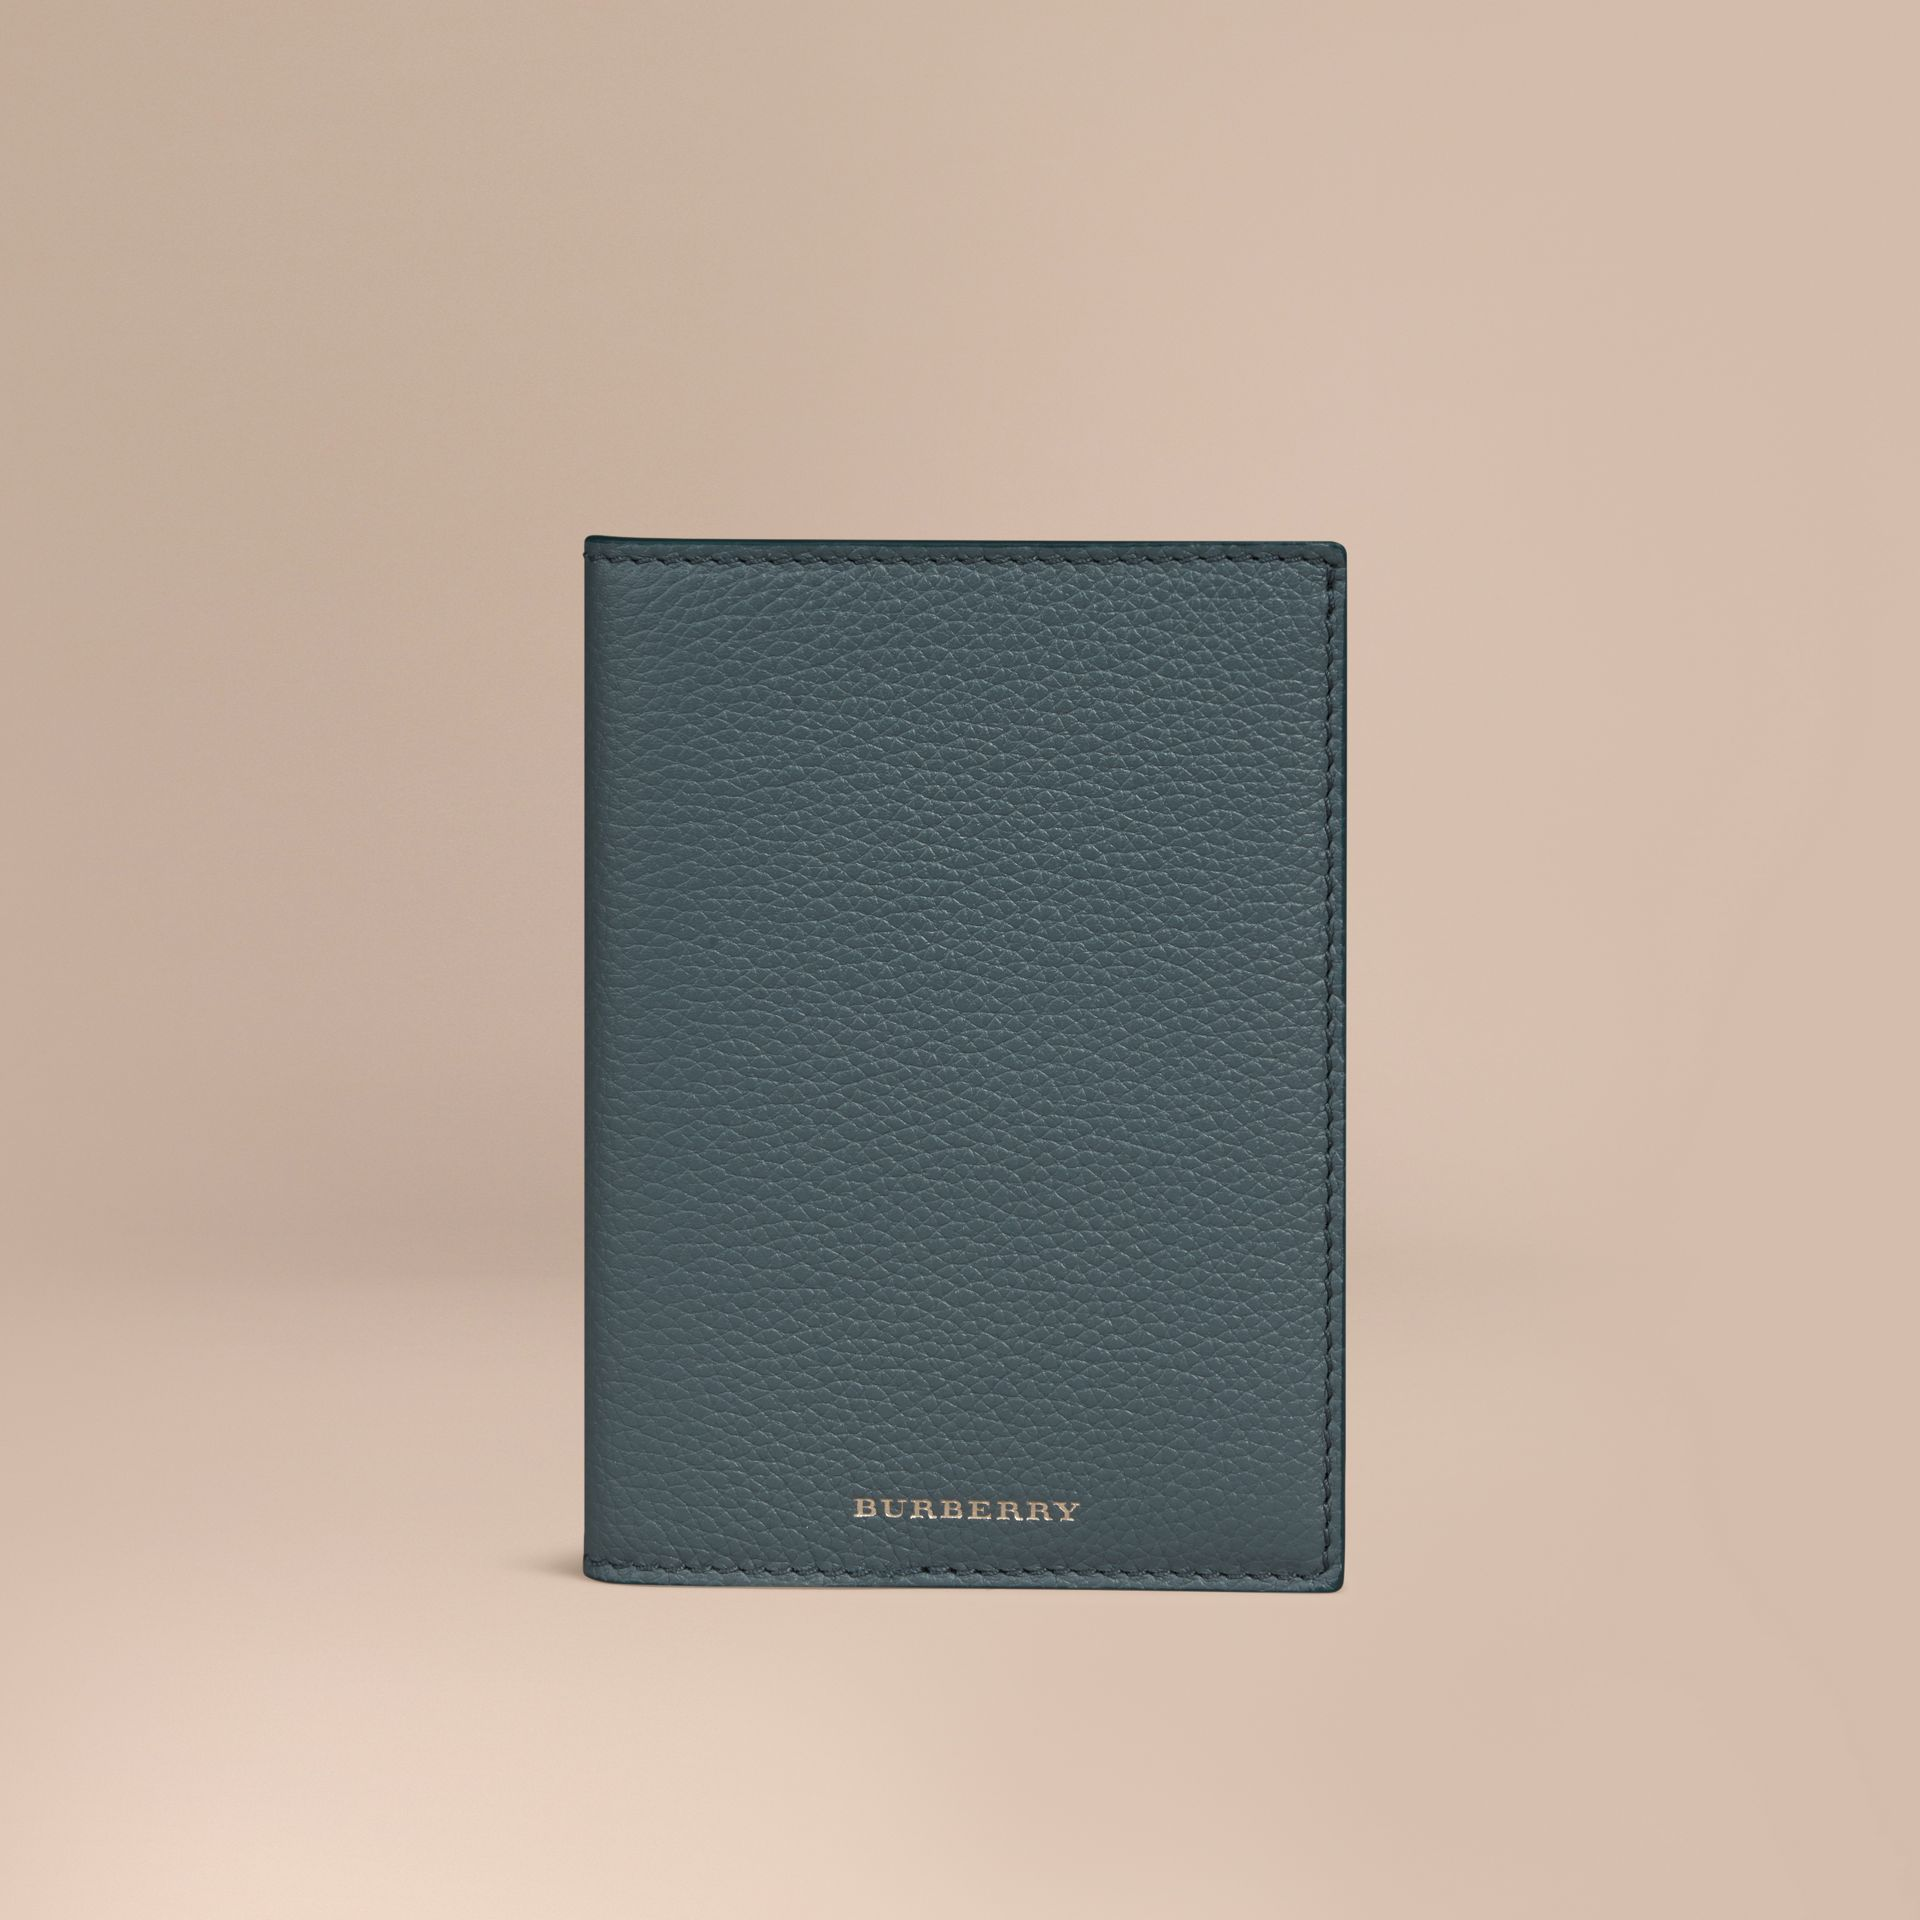 Grainy Leather Passport Cover in Dusty Teal | Burberry United Kingdom - gallery image 1